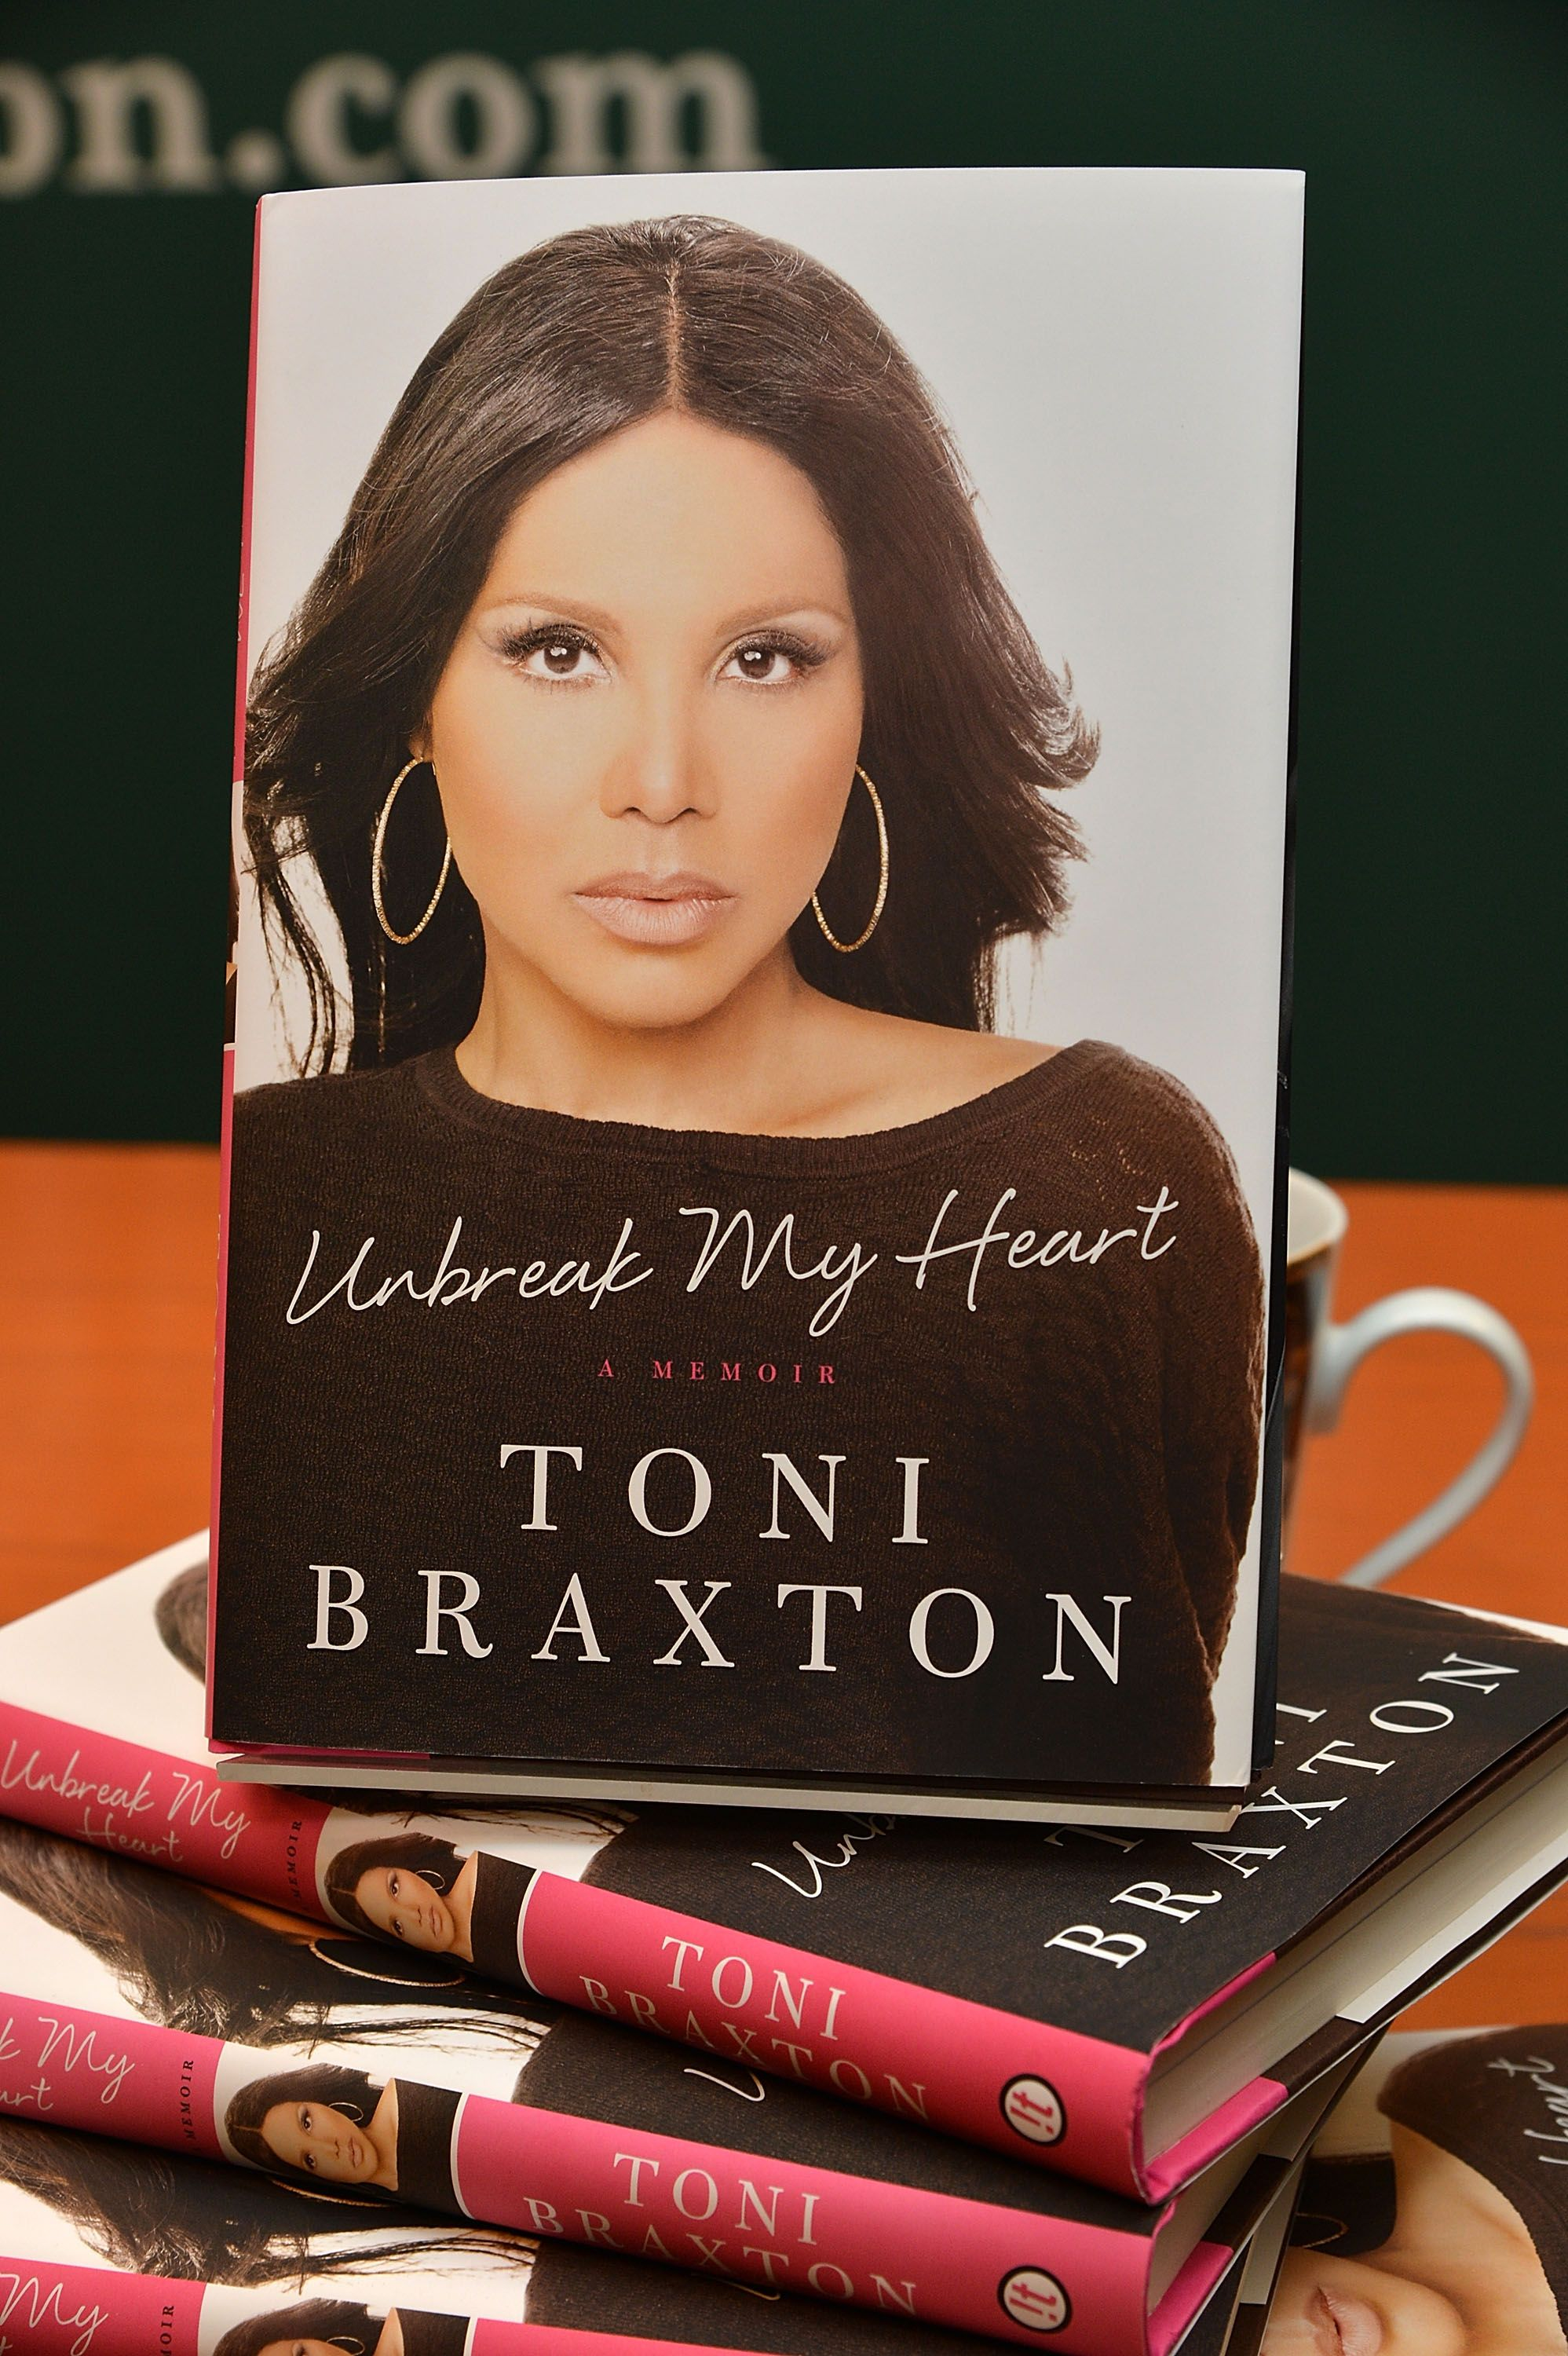 Toni Braxton's book signing on May 20, 2014 in New York. | Photo: Getty Images